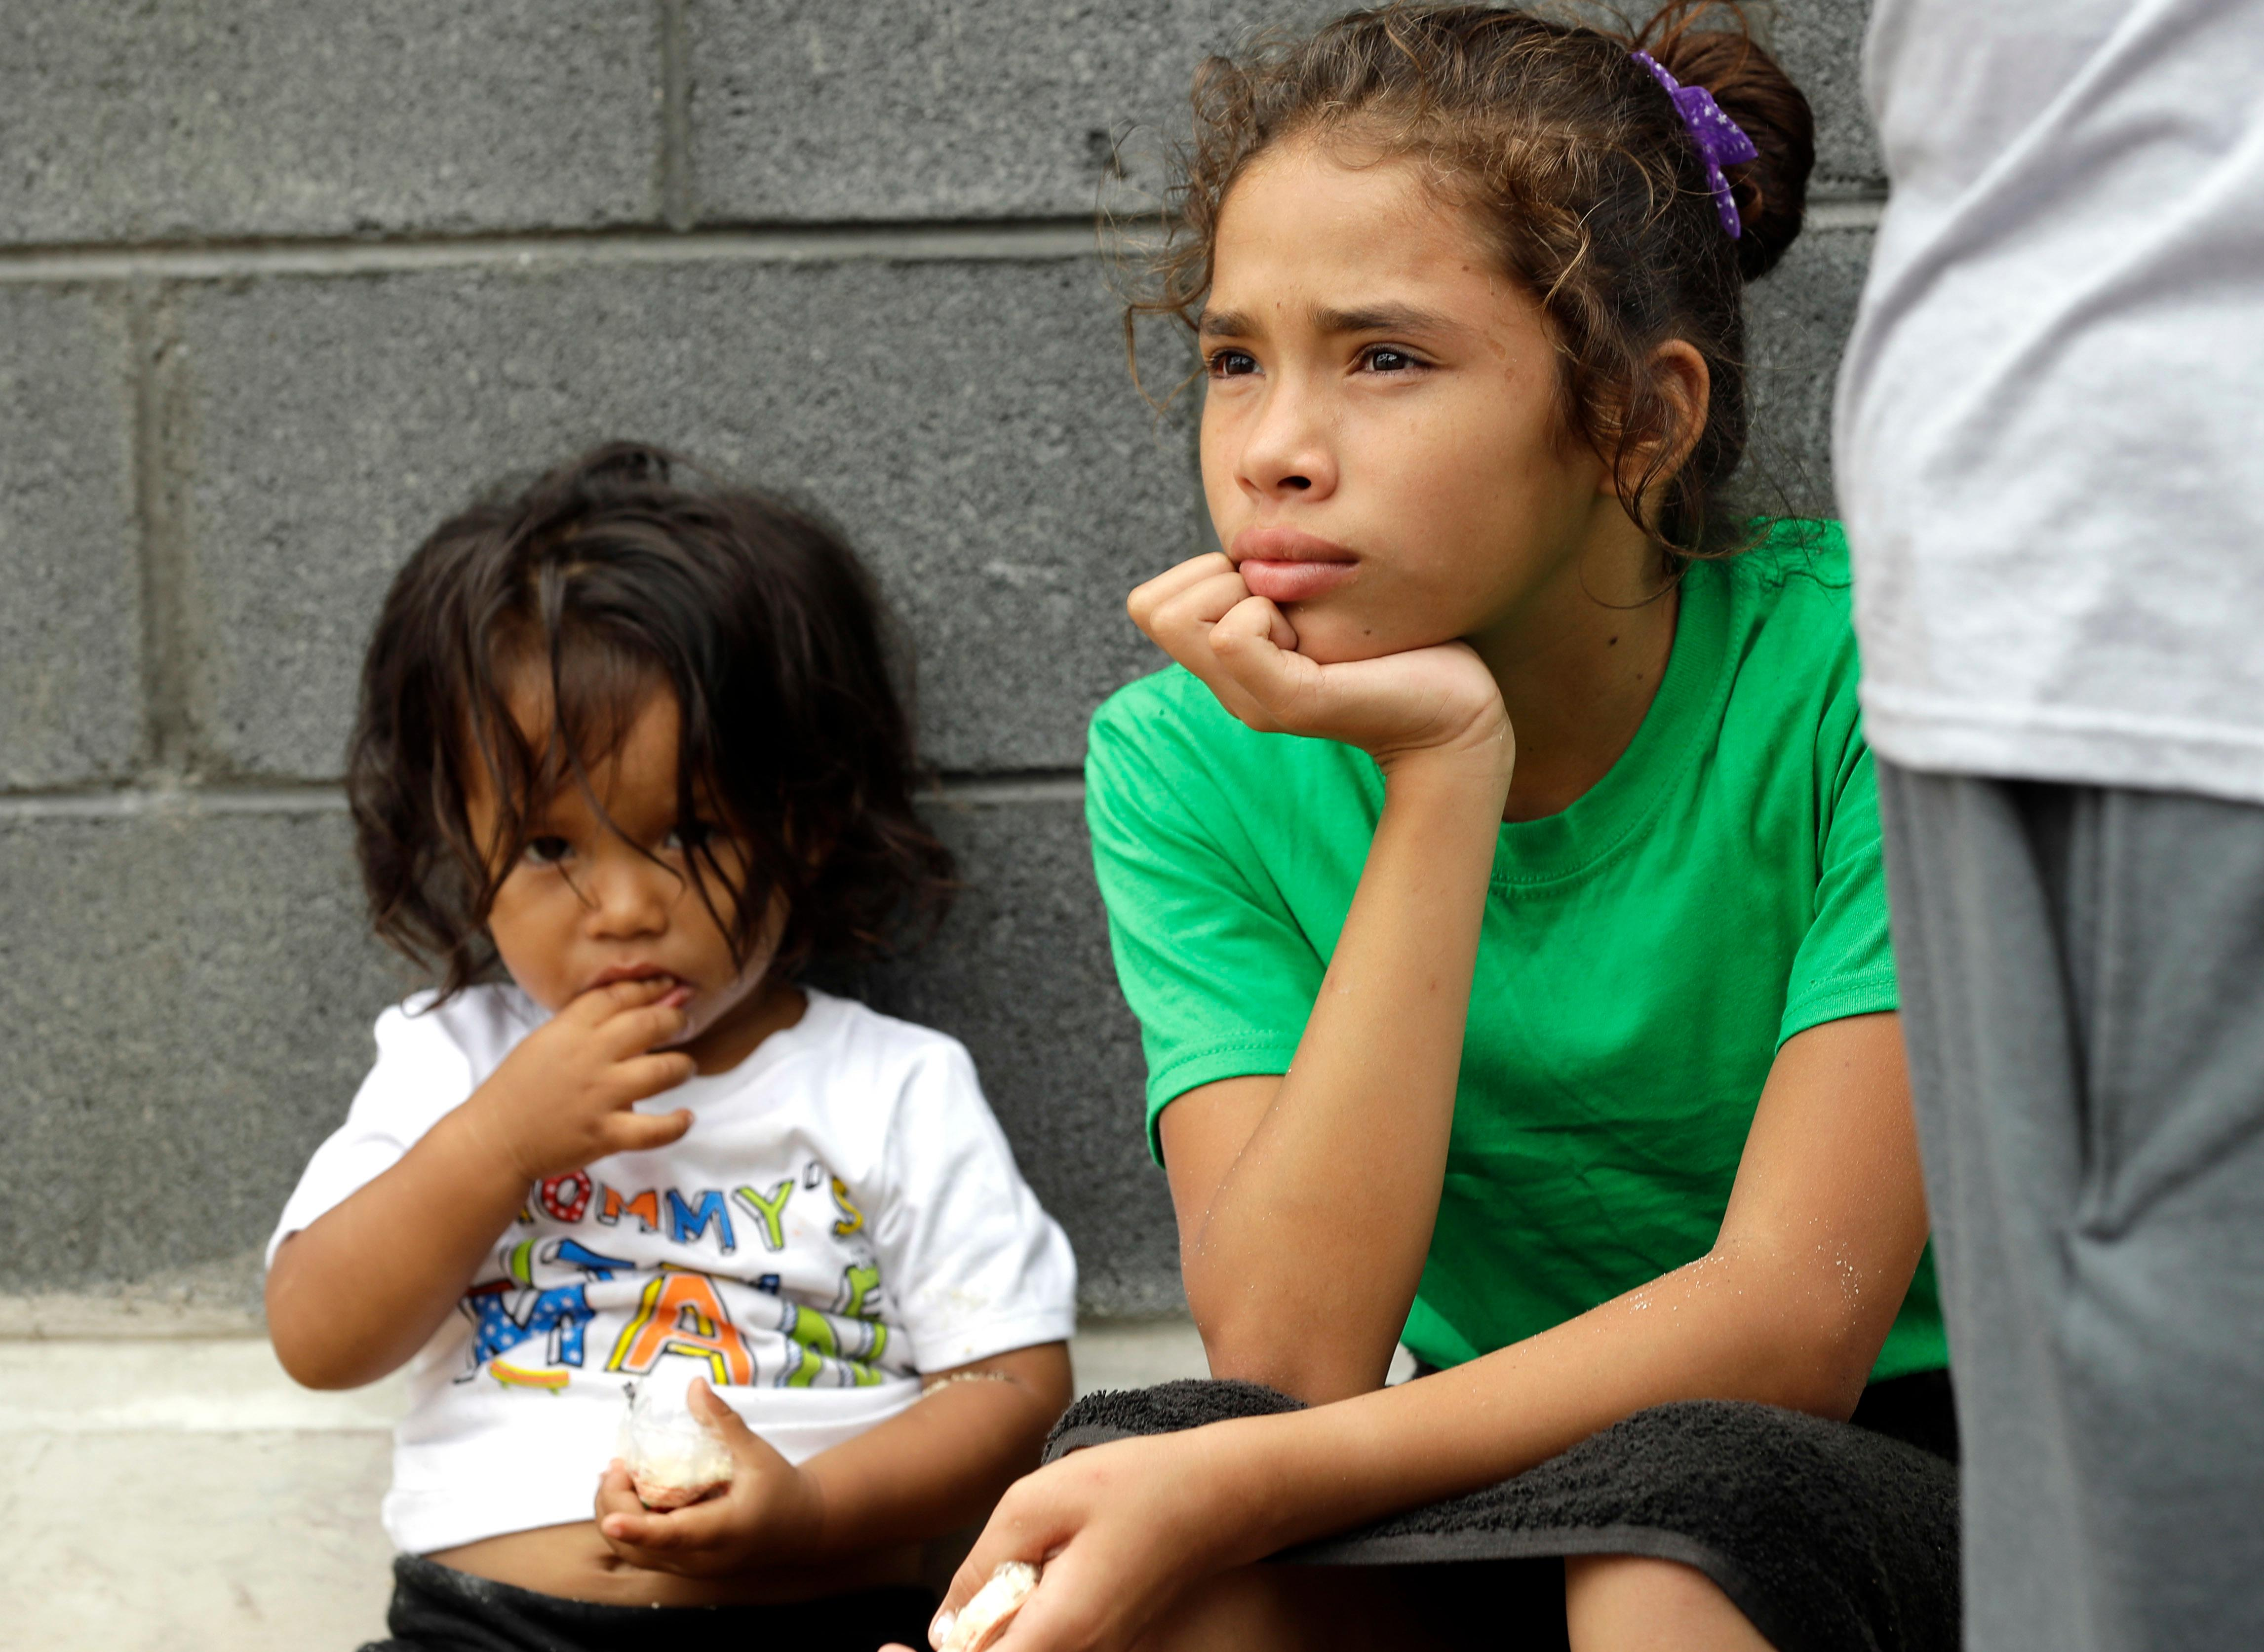 Angui Funes, right, sits with her brother, Jesus, after crossing the border back to Reynosa, Mexico, Thursday, June 21, 2018. The family, who was seeking asylum, said they were told by officials they would be separated so they voluntarily returned to Mexico. (AP Photo/David J. Phillip)